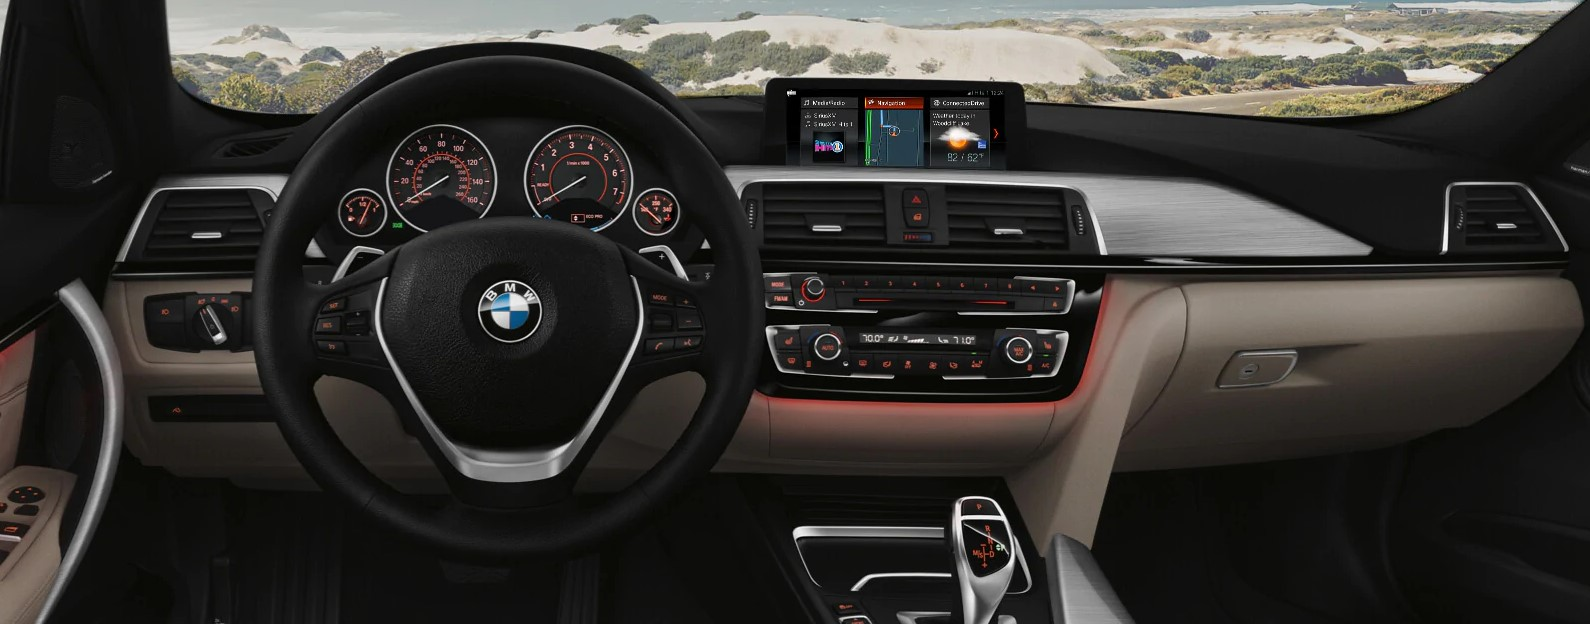 2019 BMW 330i Black and Tan Interior